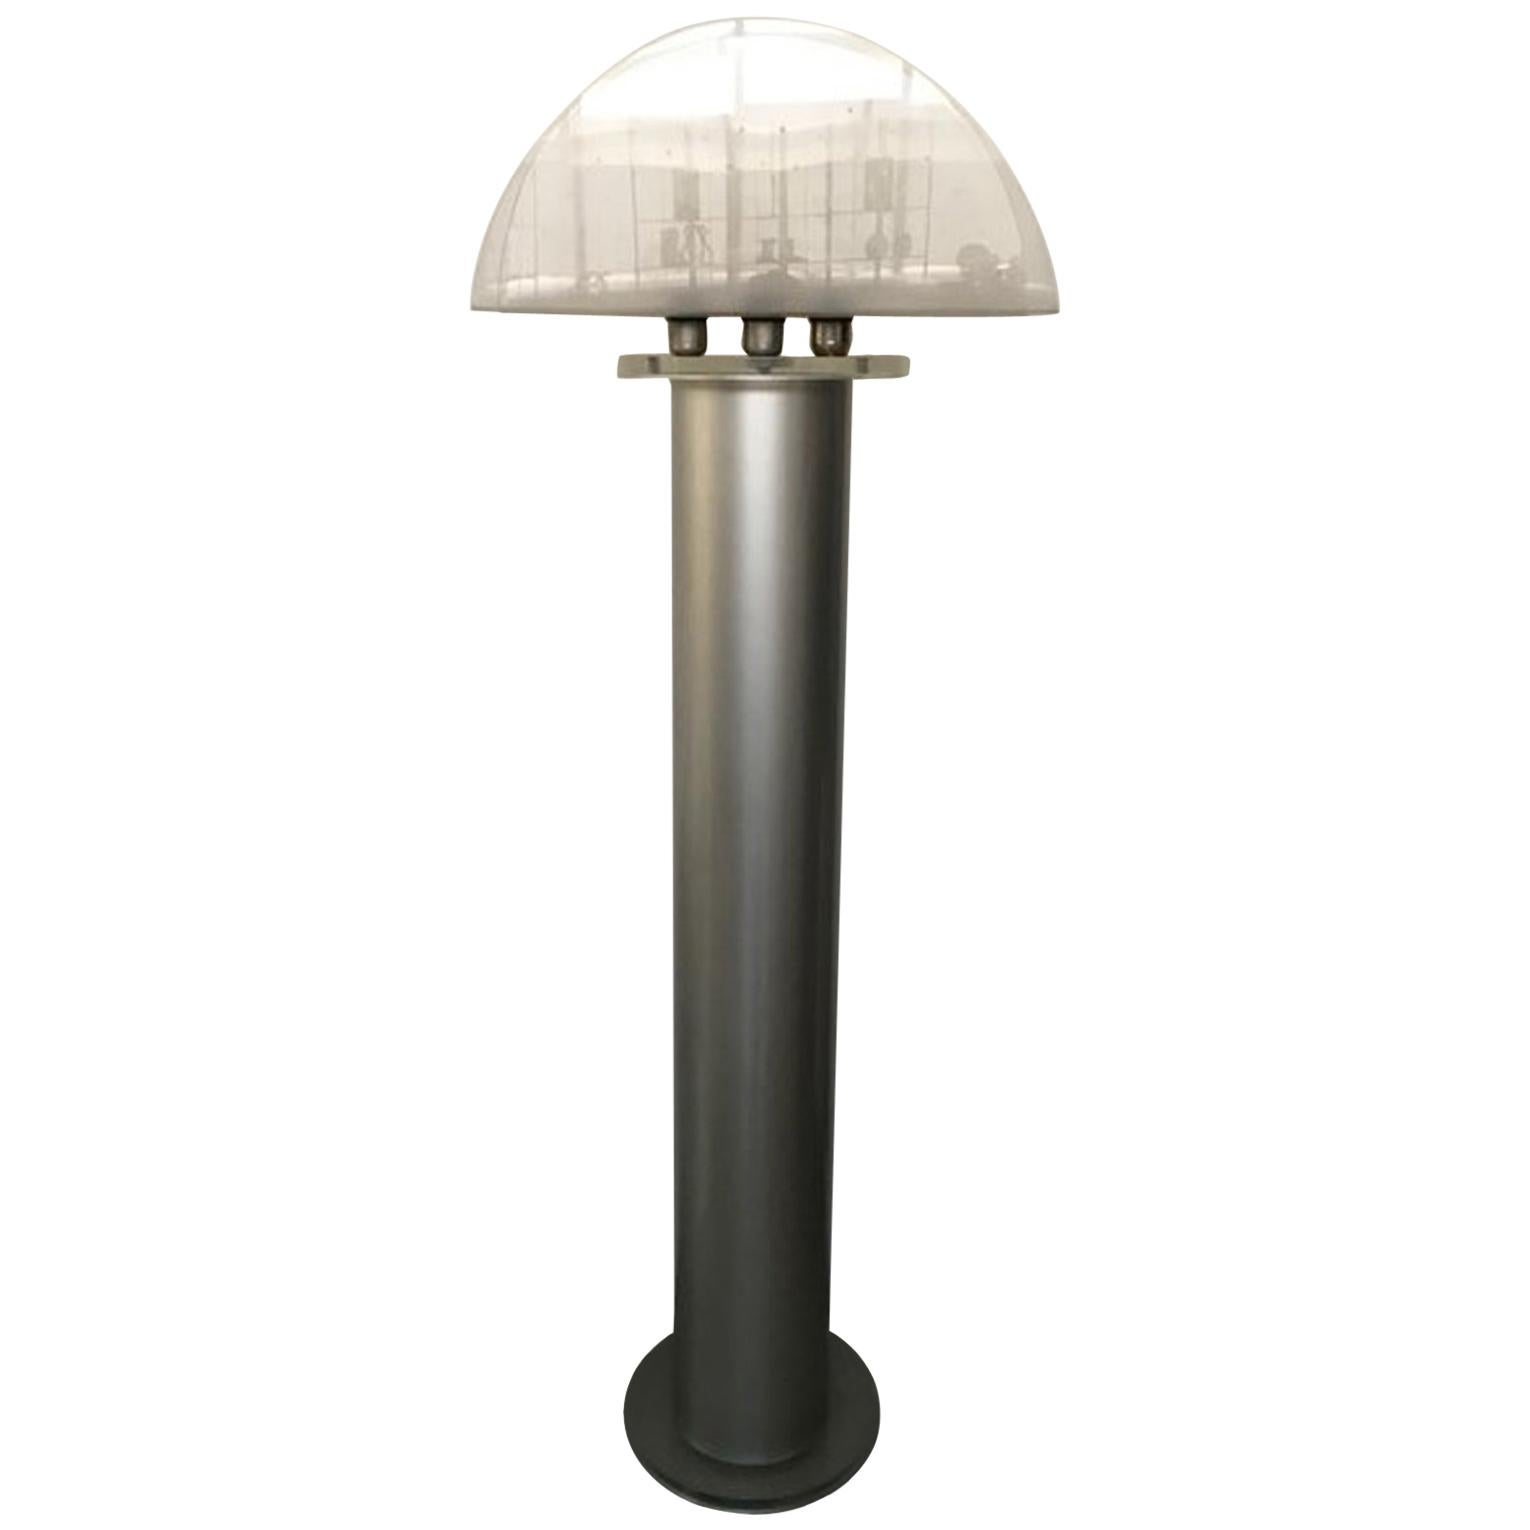 Italian Postmodern Design 1970 Lacquered Aluminium Floor Lamp with Plexiglass